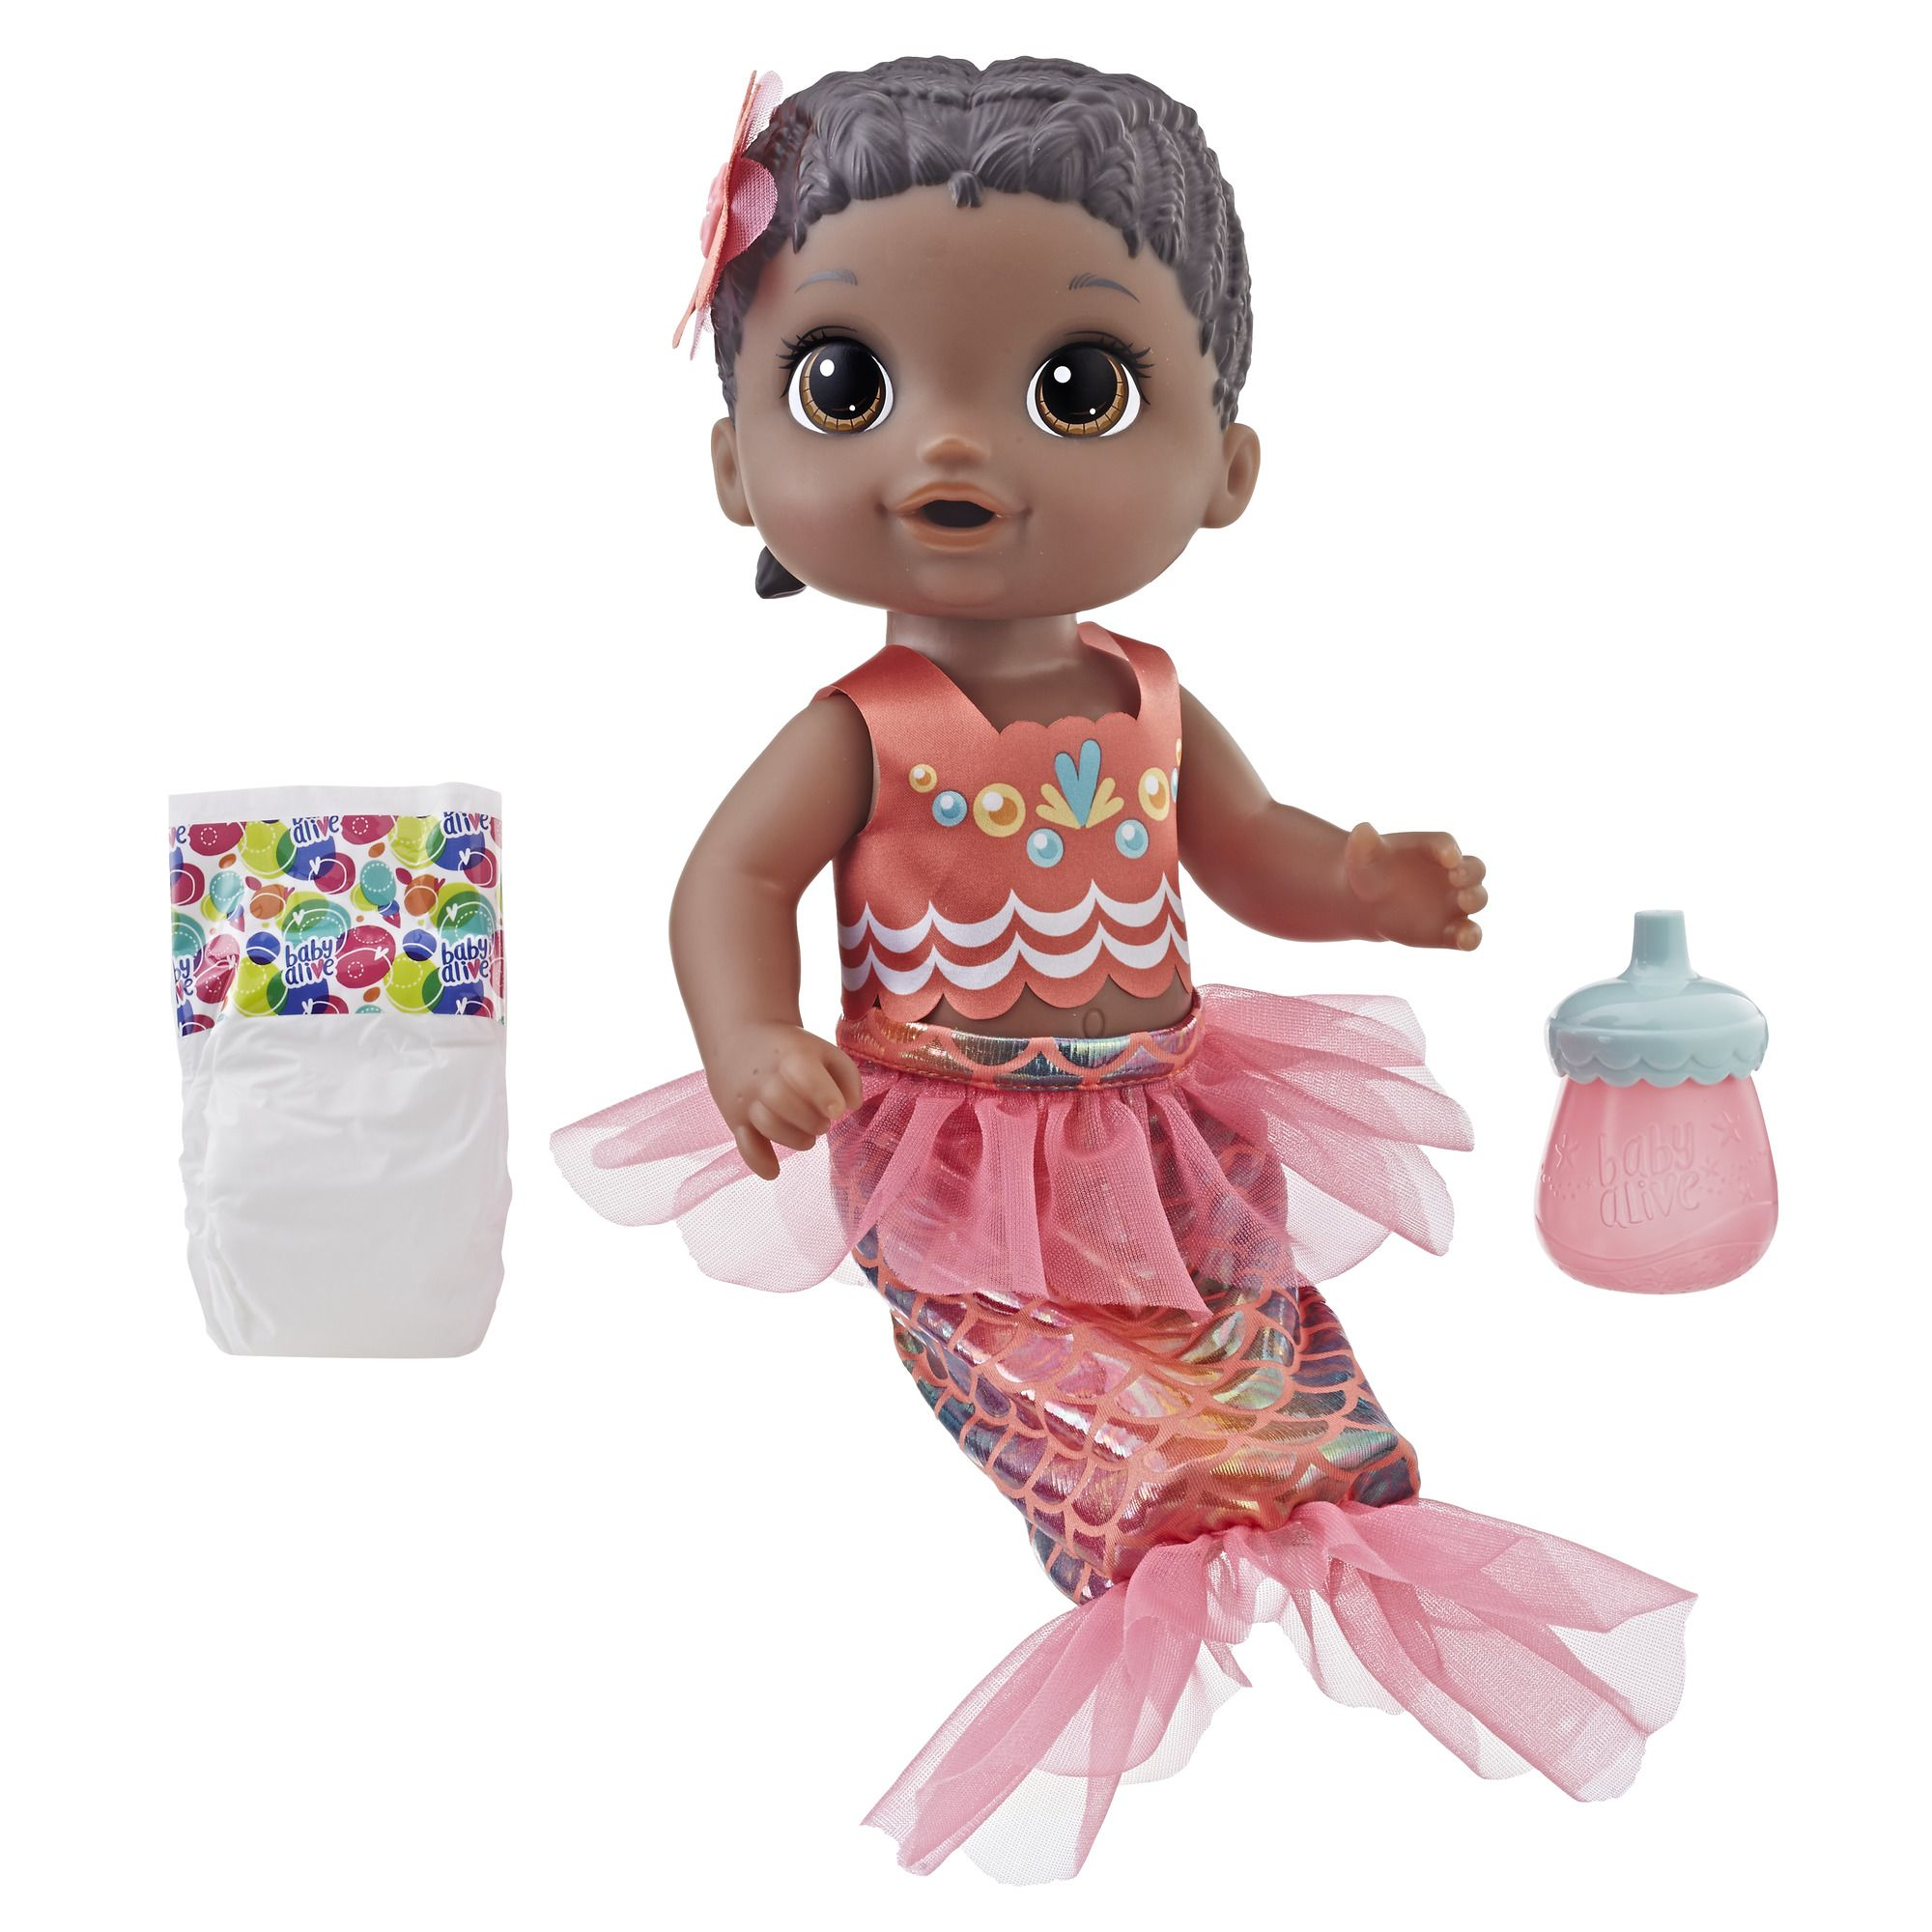 Baby Alive Shimmer N Splash Mermaid Baby Doll, Black Hair